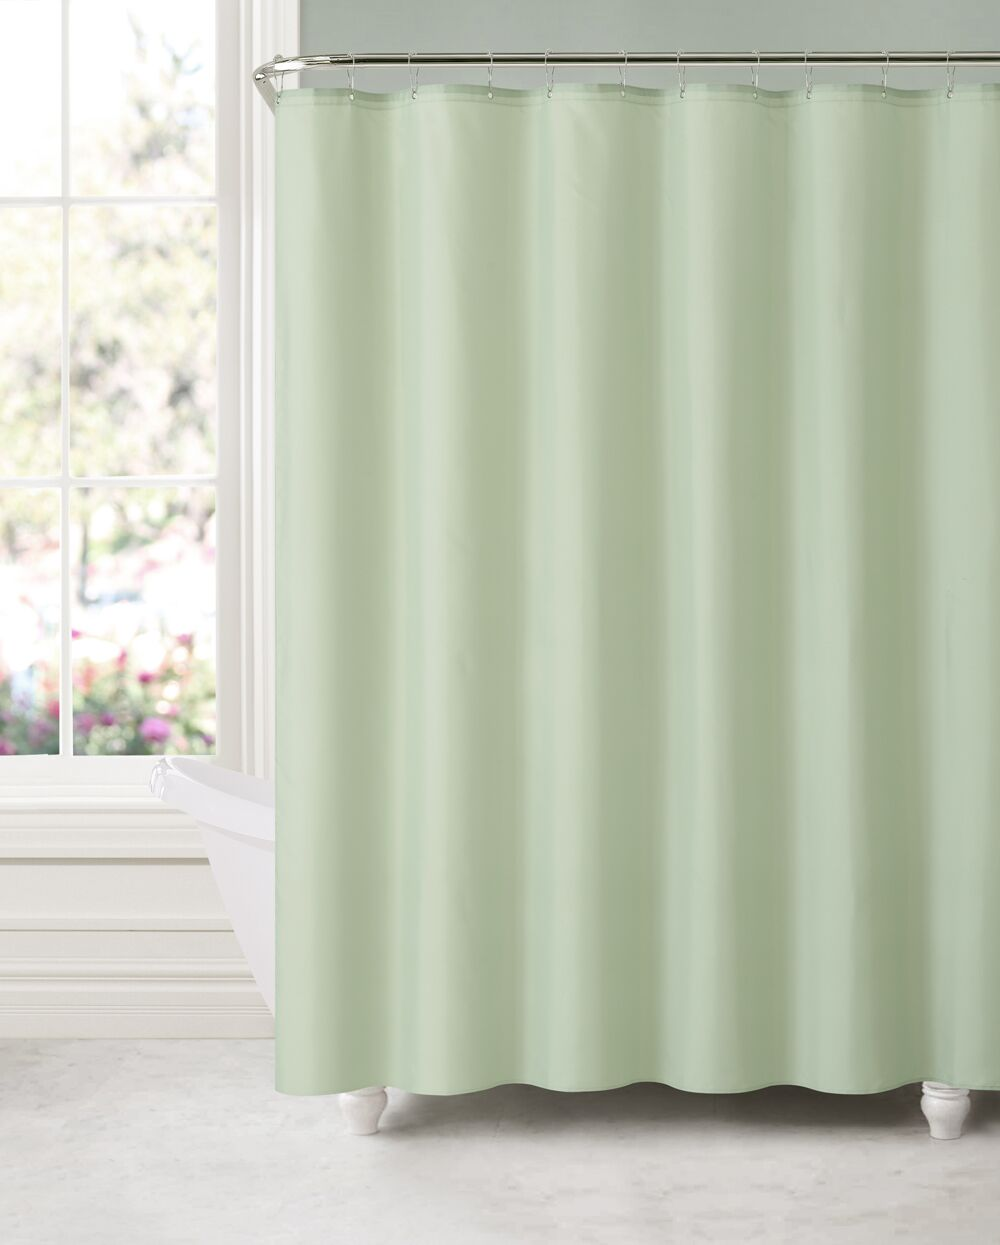 Acton Water and Mildew Resistant Shower Curtain Color: Sage Green